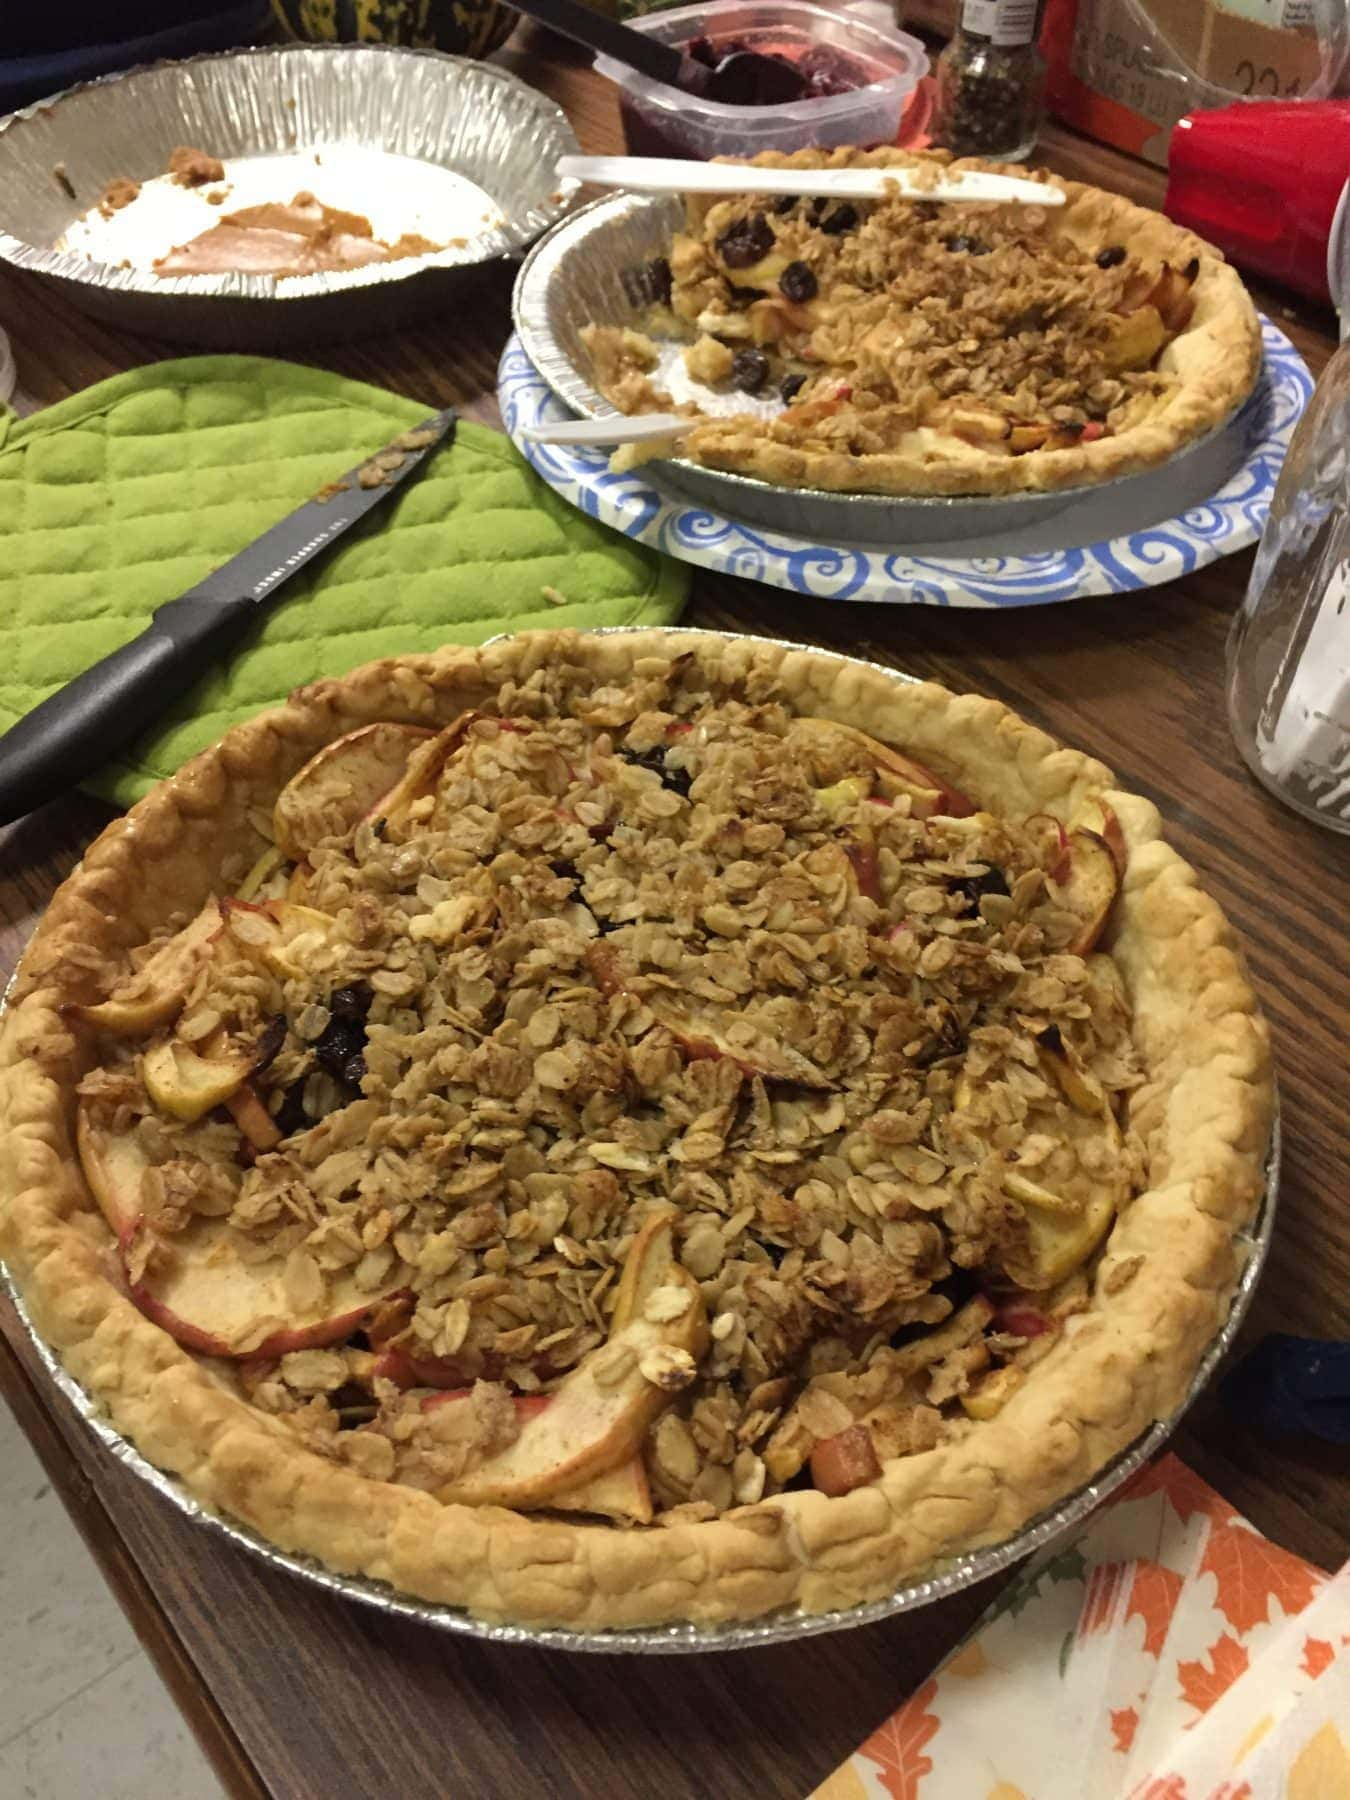 Vegan Thanksgiving Potluck at College: If We Can Do It, You Can, Too! 1